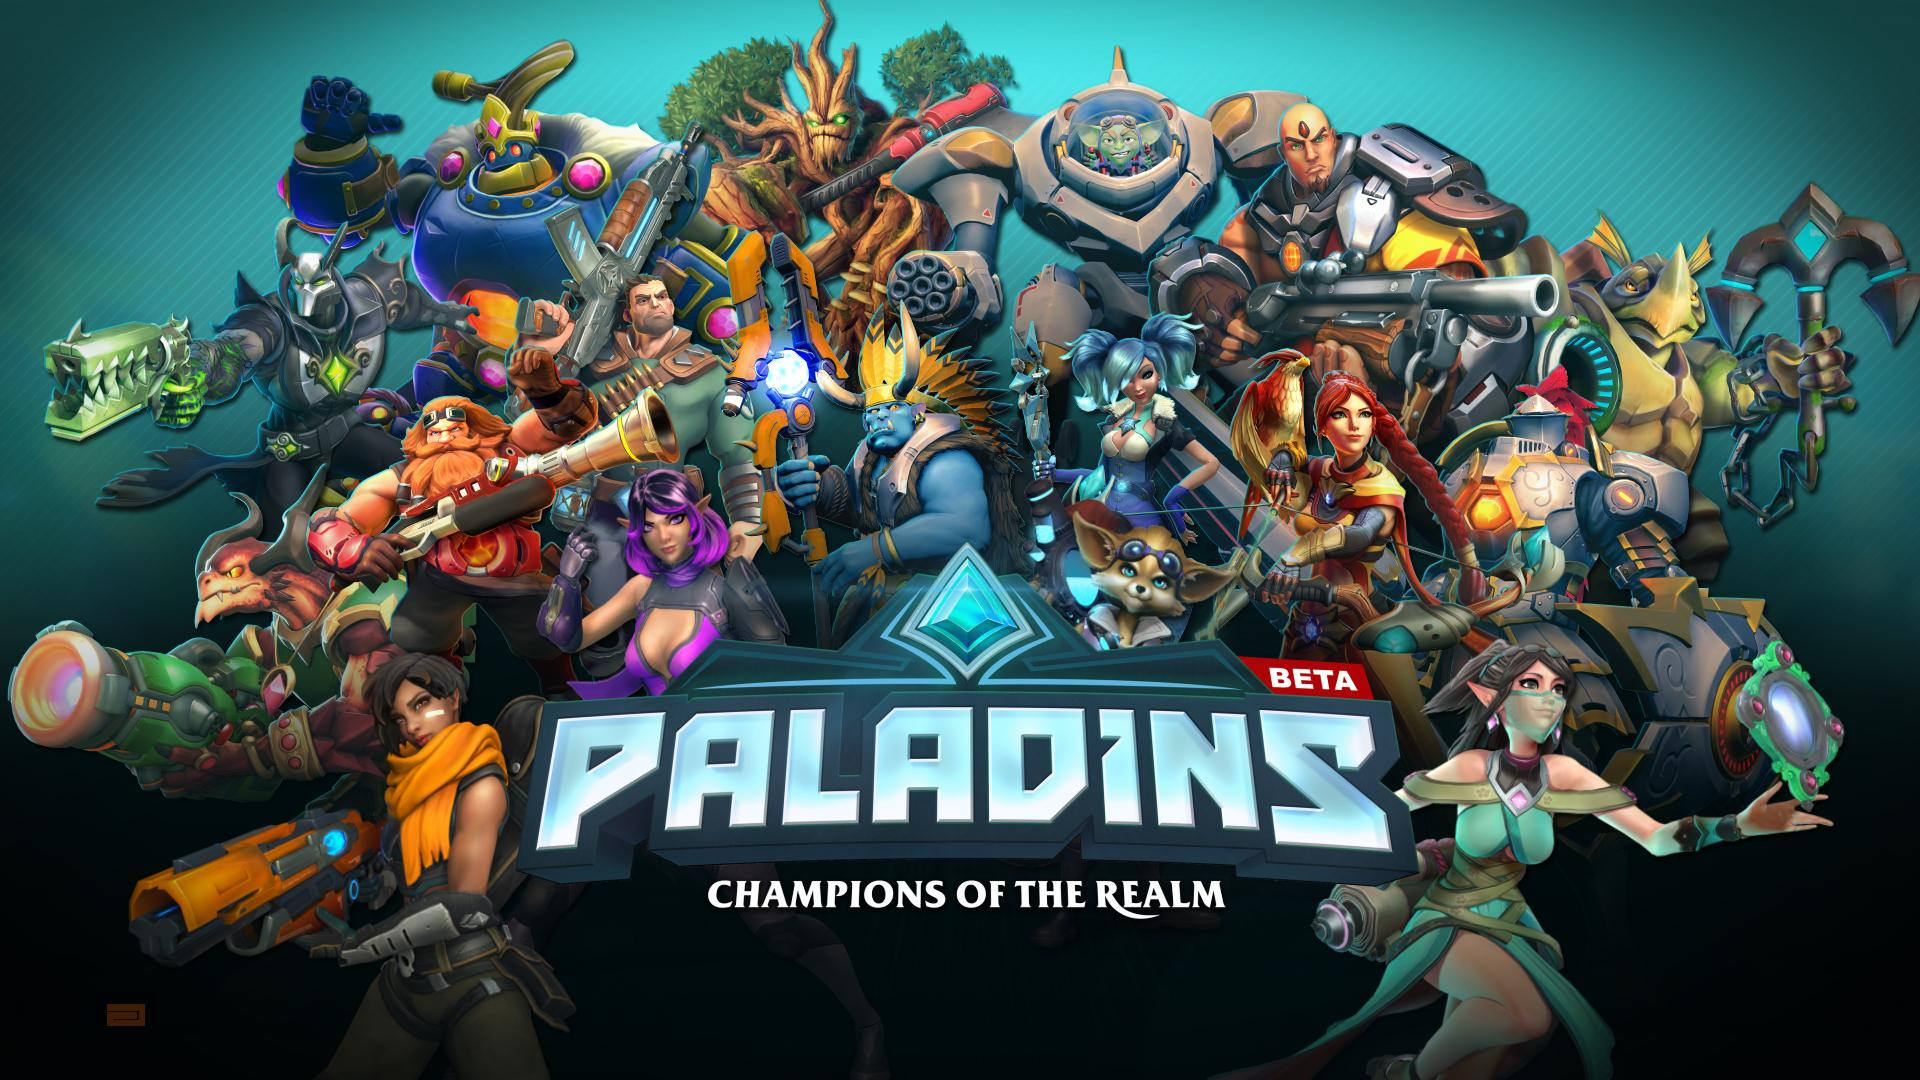 Disponible el parche 53 de Paladins para Playstation 4 y Xbox One. Frostmare Mount y skins